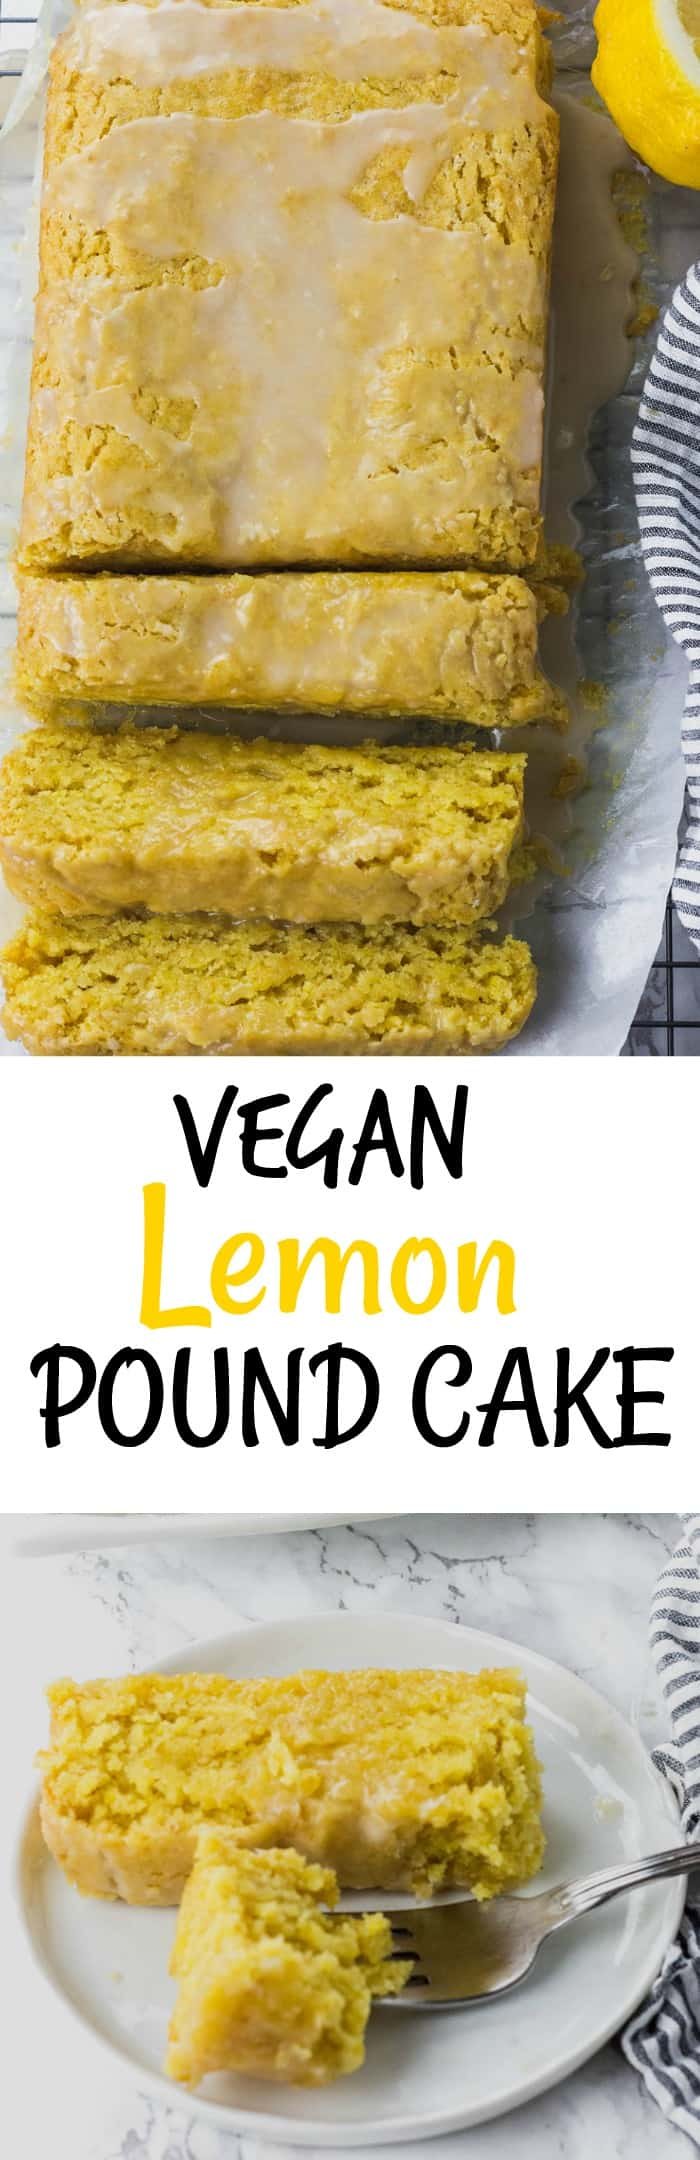 Vegan Lemon Pound Cake Pin